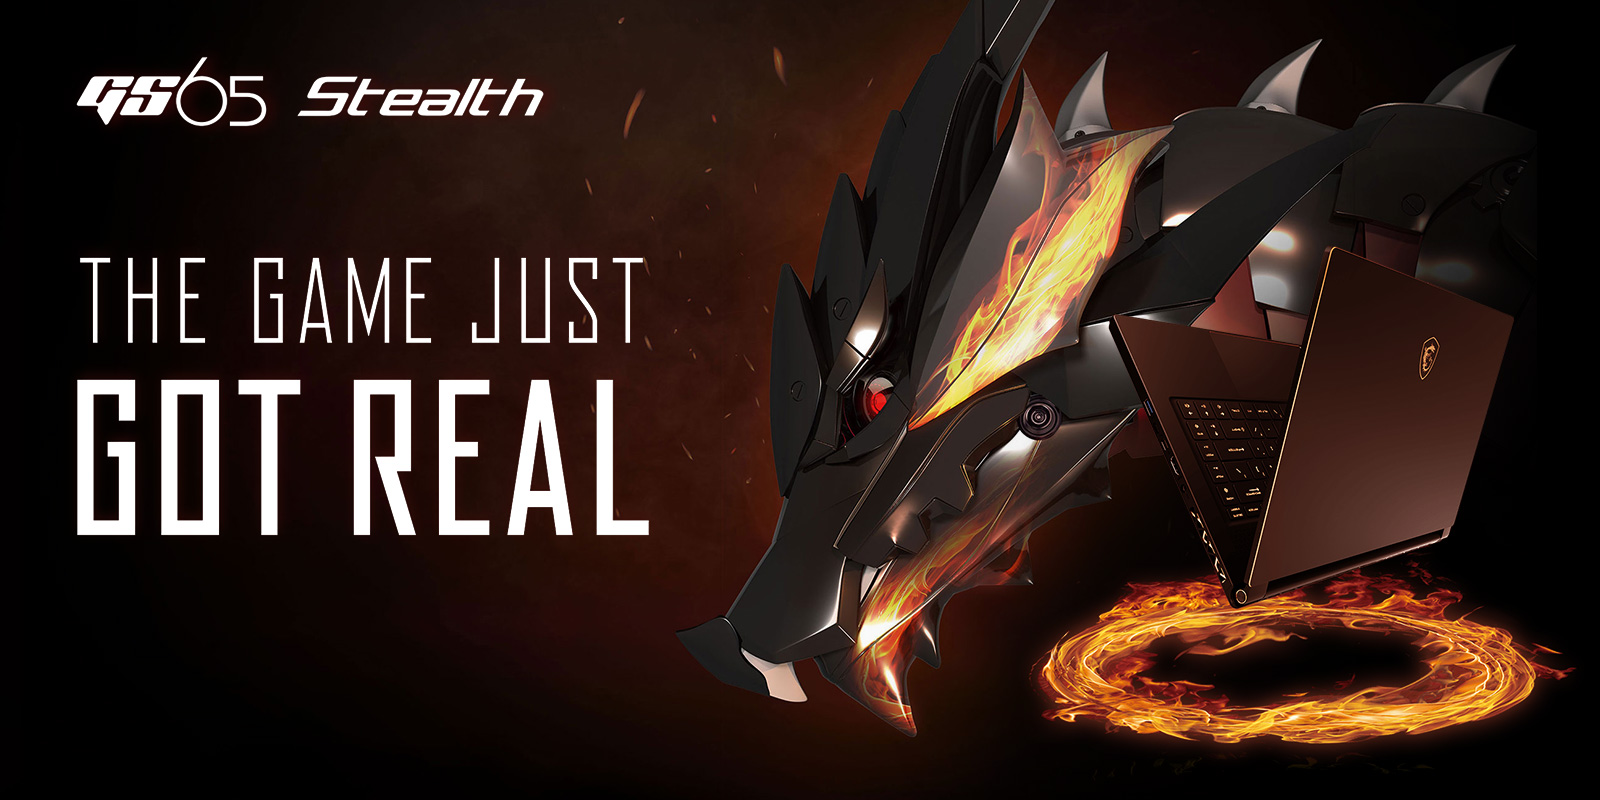 Gigabyte GS65 Stealth Gaming Laptop open and floating above a ring of fire next to a metal, red-eyed dragon. There is text that reads: THE GAME JUST GOT REAL